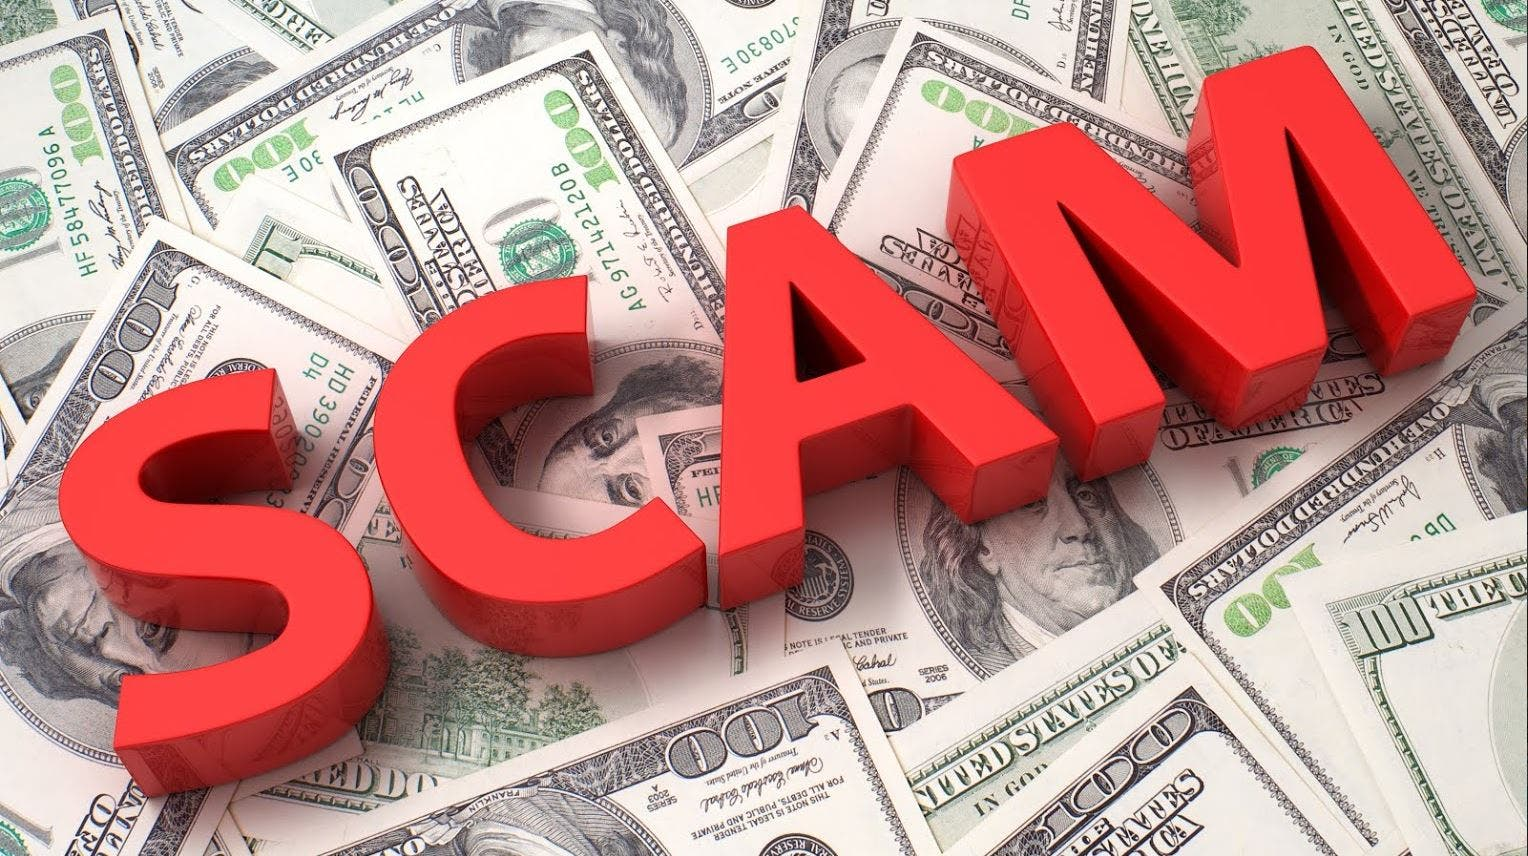 Police Warn of Publishers Clearing House Scam | Edgewater, MD Patch